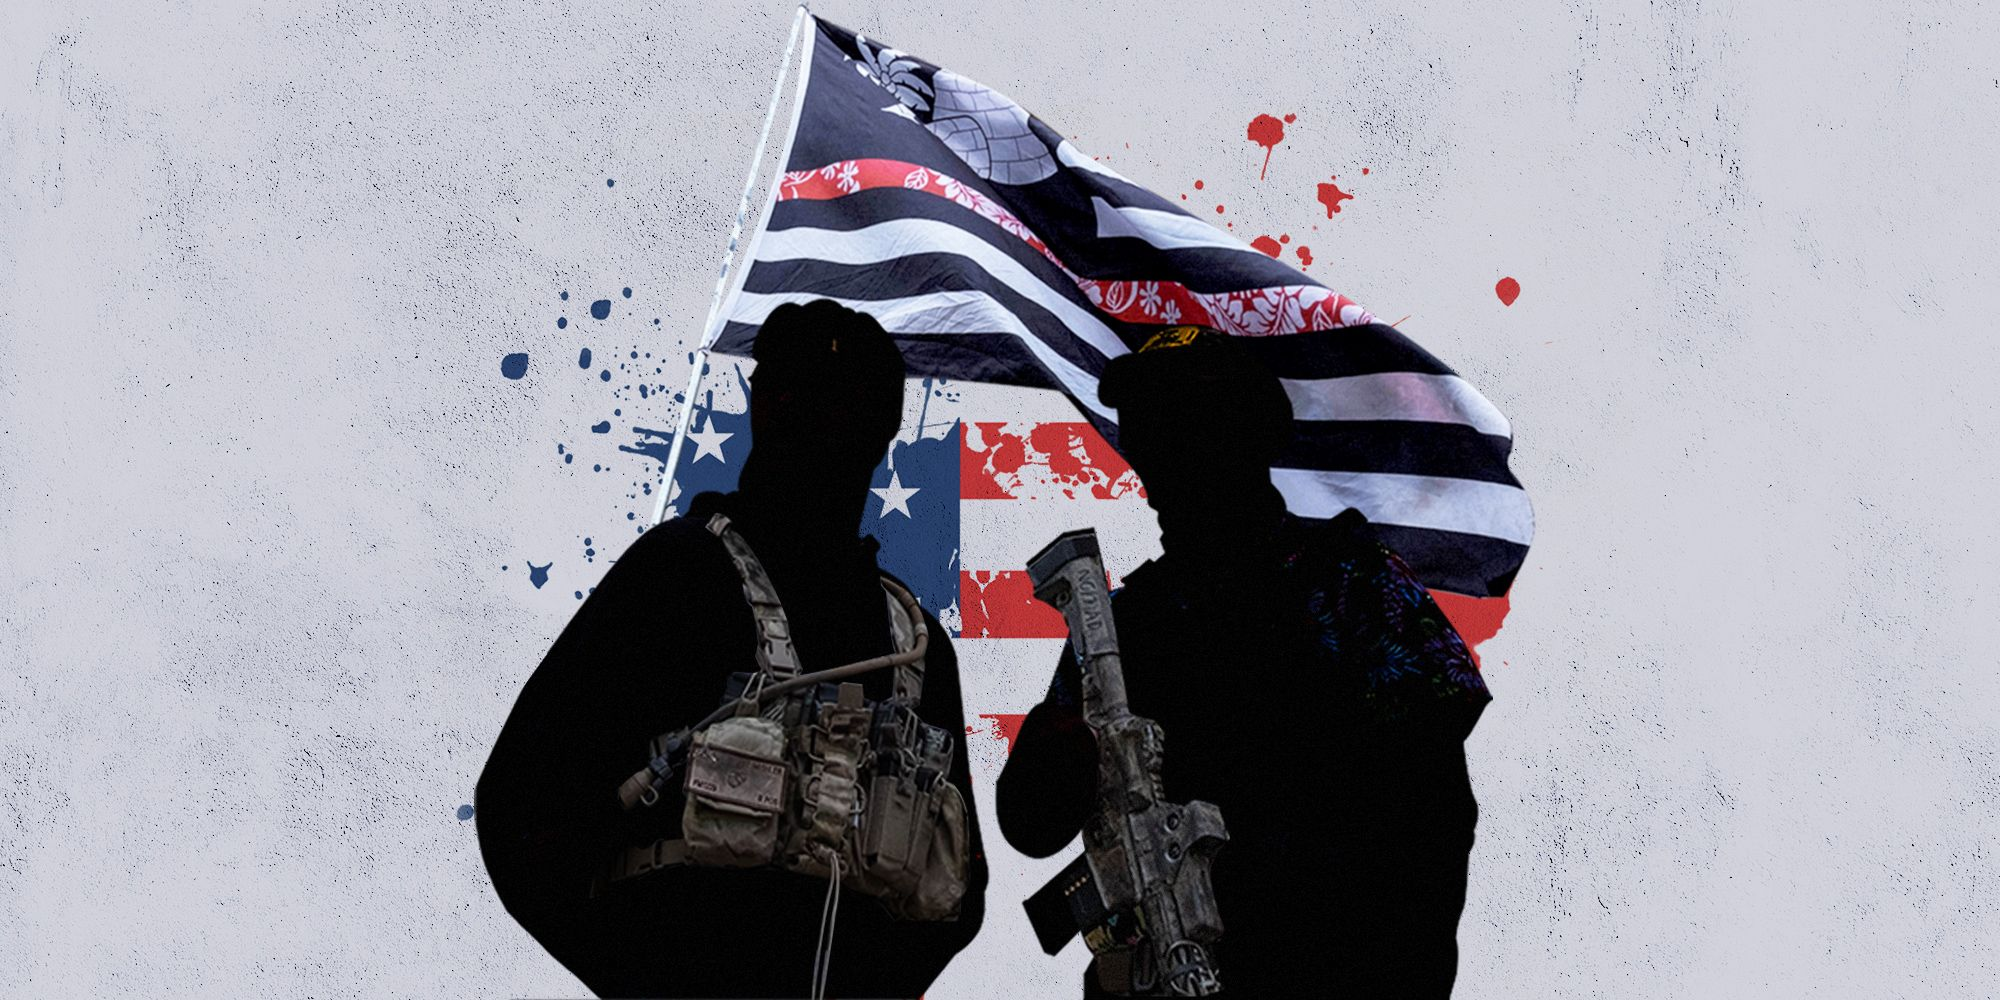 An Expert on Right Wing Extremist Groups Warns 'The Threat Is Escalating'